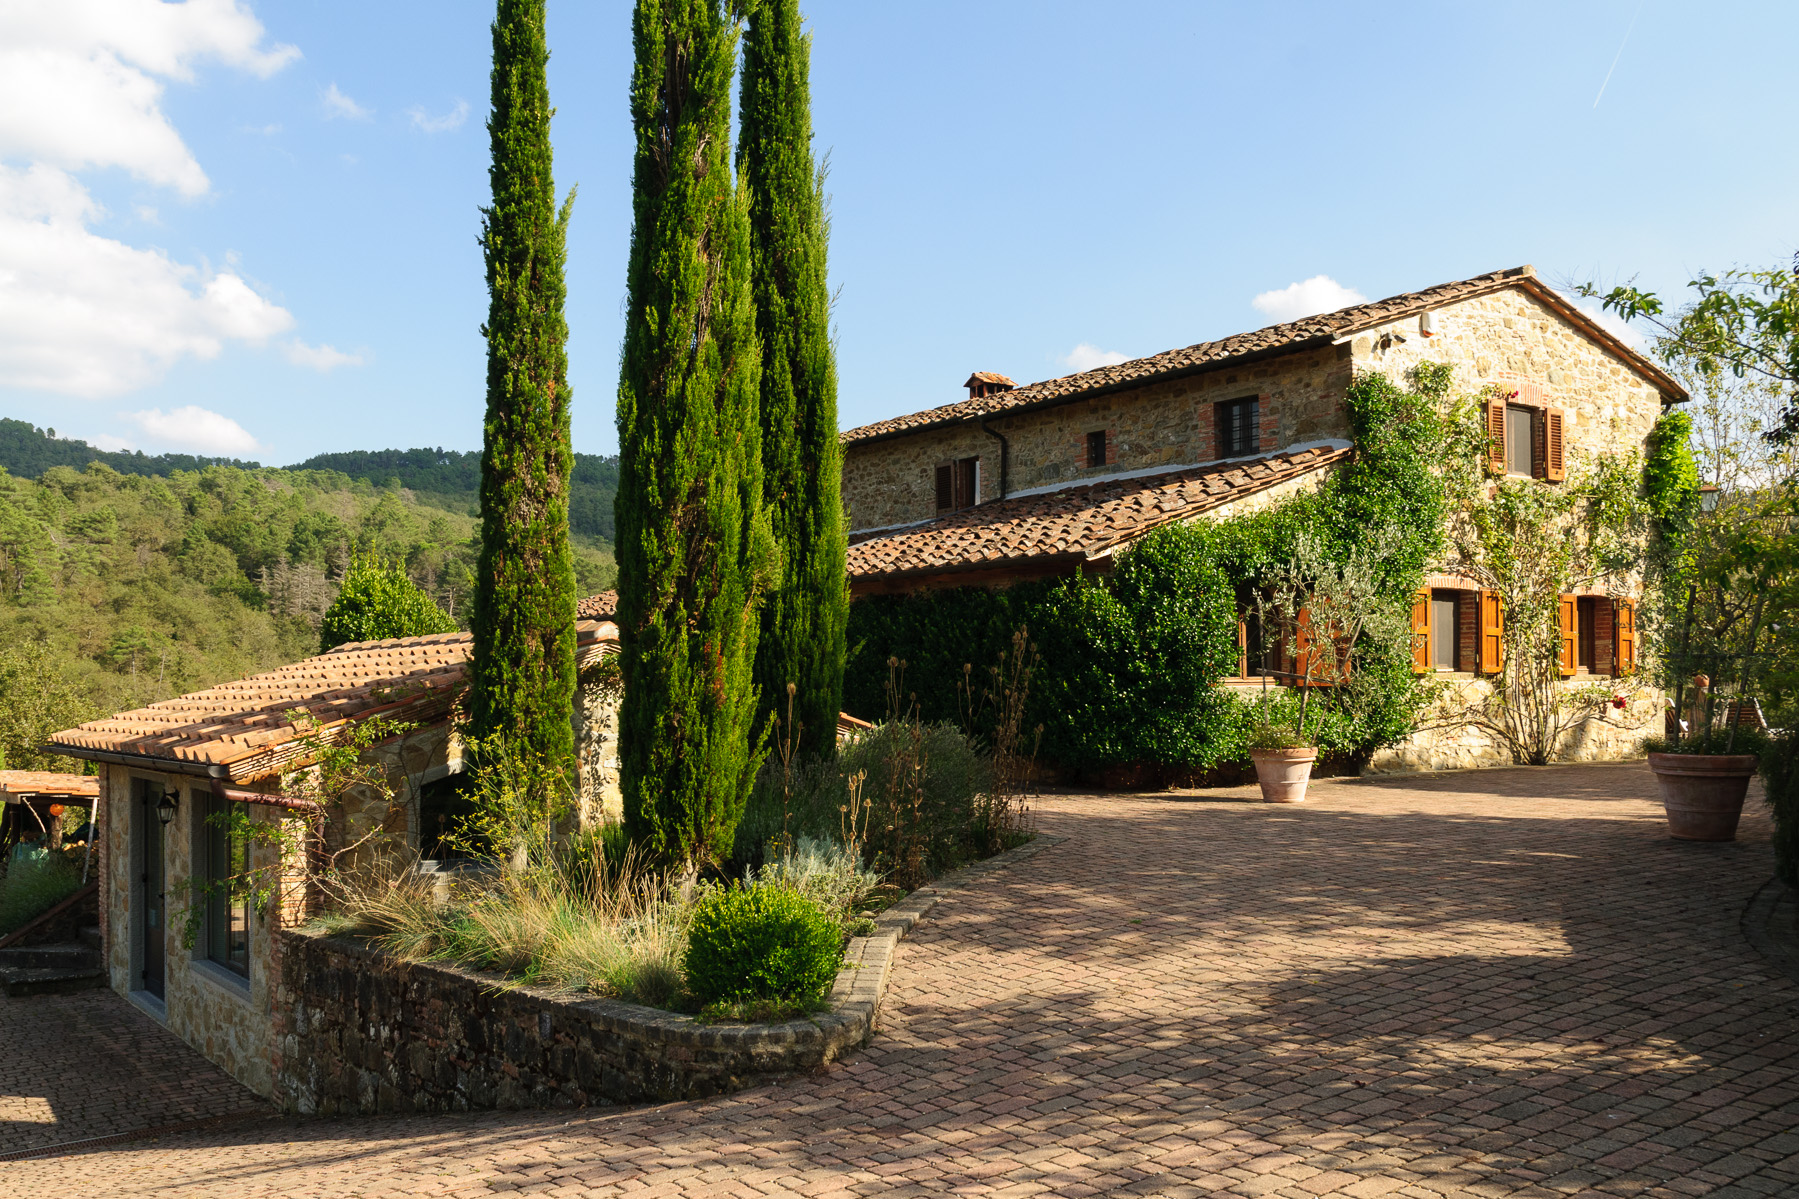 Farmhouse overlooking the Chianti Classico countryside